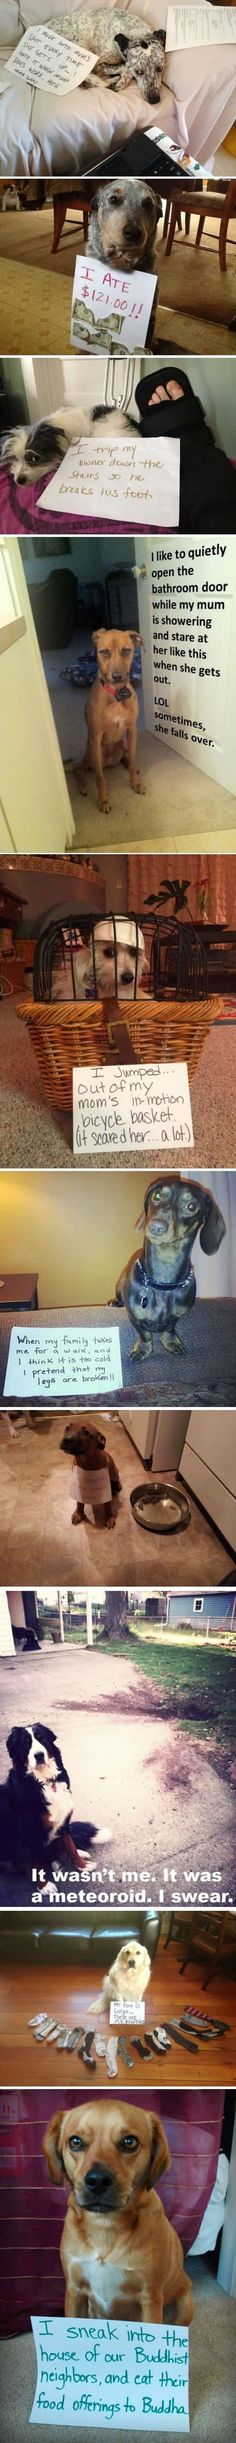 Funny Dog Shaming - notice how you never see any cat shaming... This is clearly because they have no shame. #funnydogs #funnydogshaming